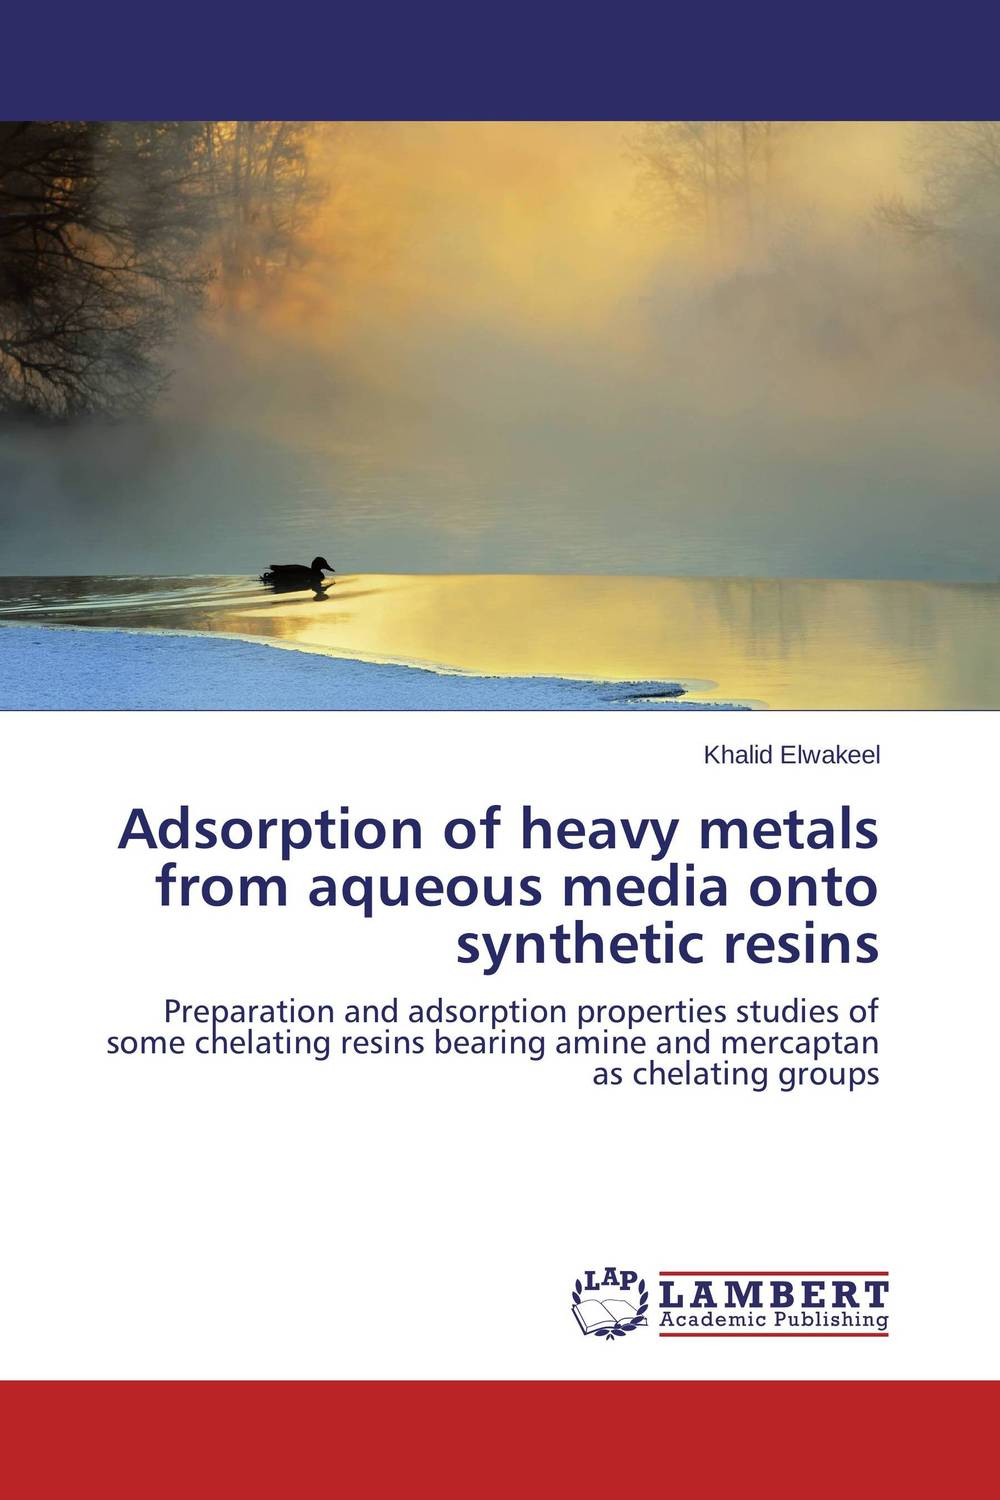 Adsorption of heavy metals from aqueous media onto synthetic resins the bostonians ii